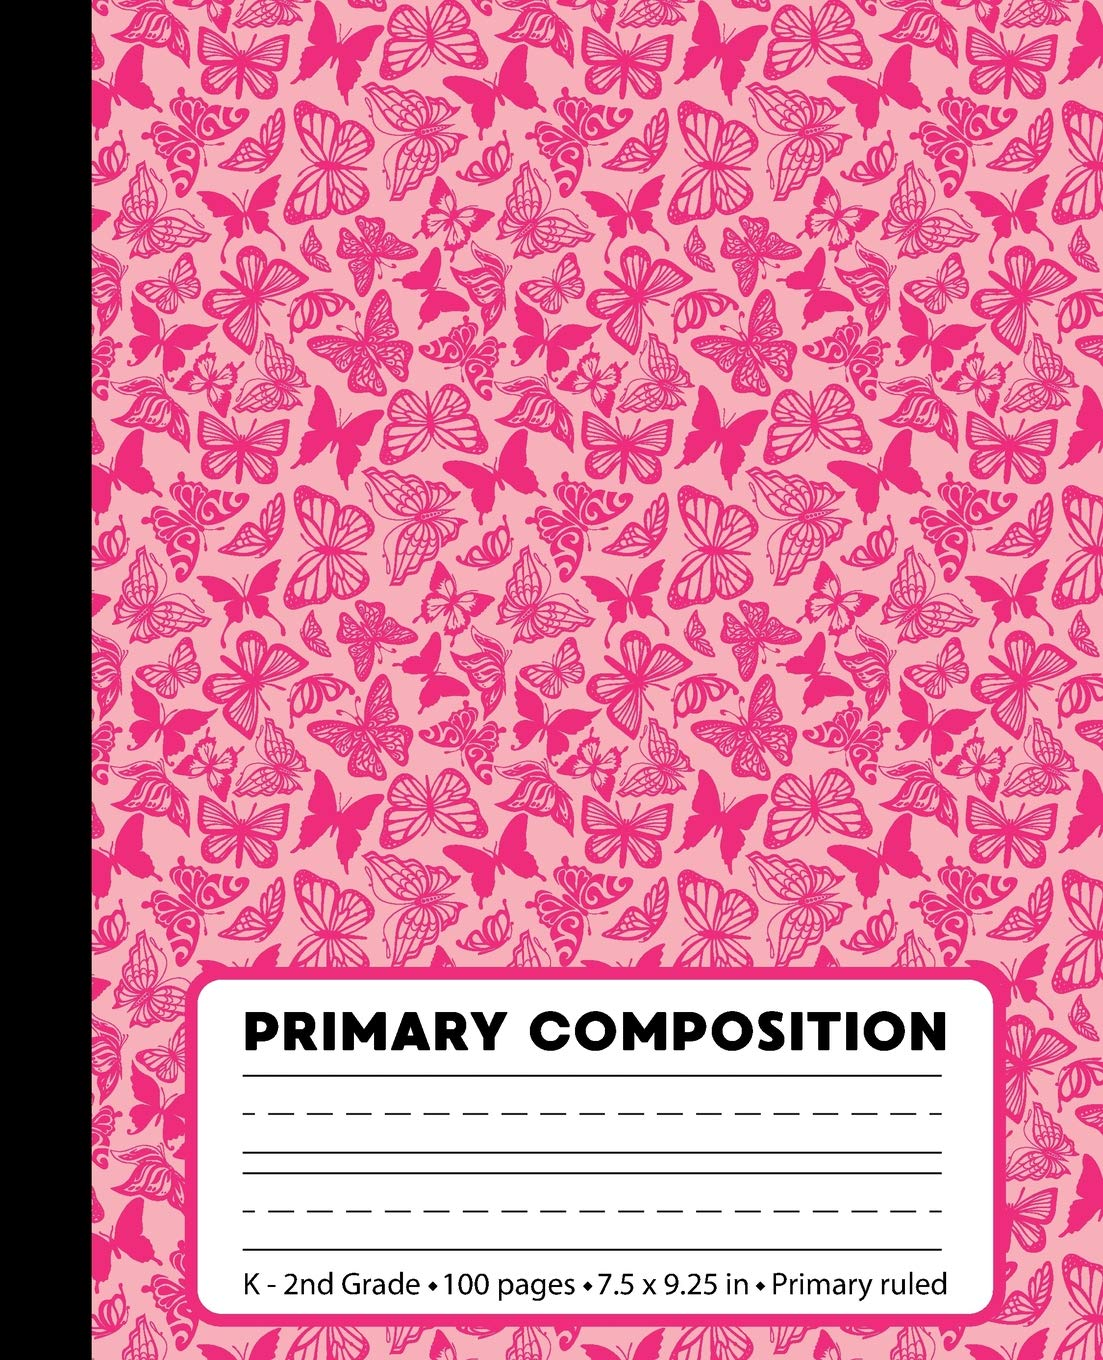 Read Online Primary Composition: Butterfly Pink Black Marble Composition Book for Girls K-2. Beautiful notebook handwriting paper. Primary ruled - middle dotted ... 7.5 x 9.25 inches (Primary Composition Books) PDF